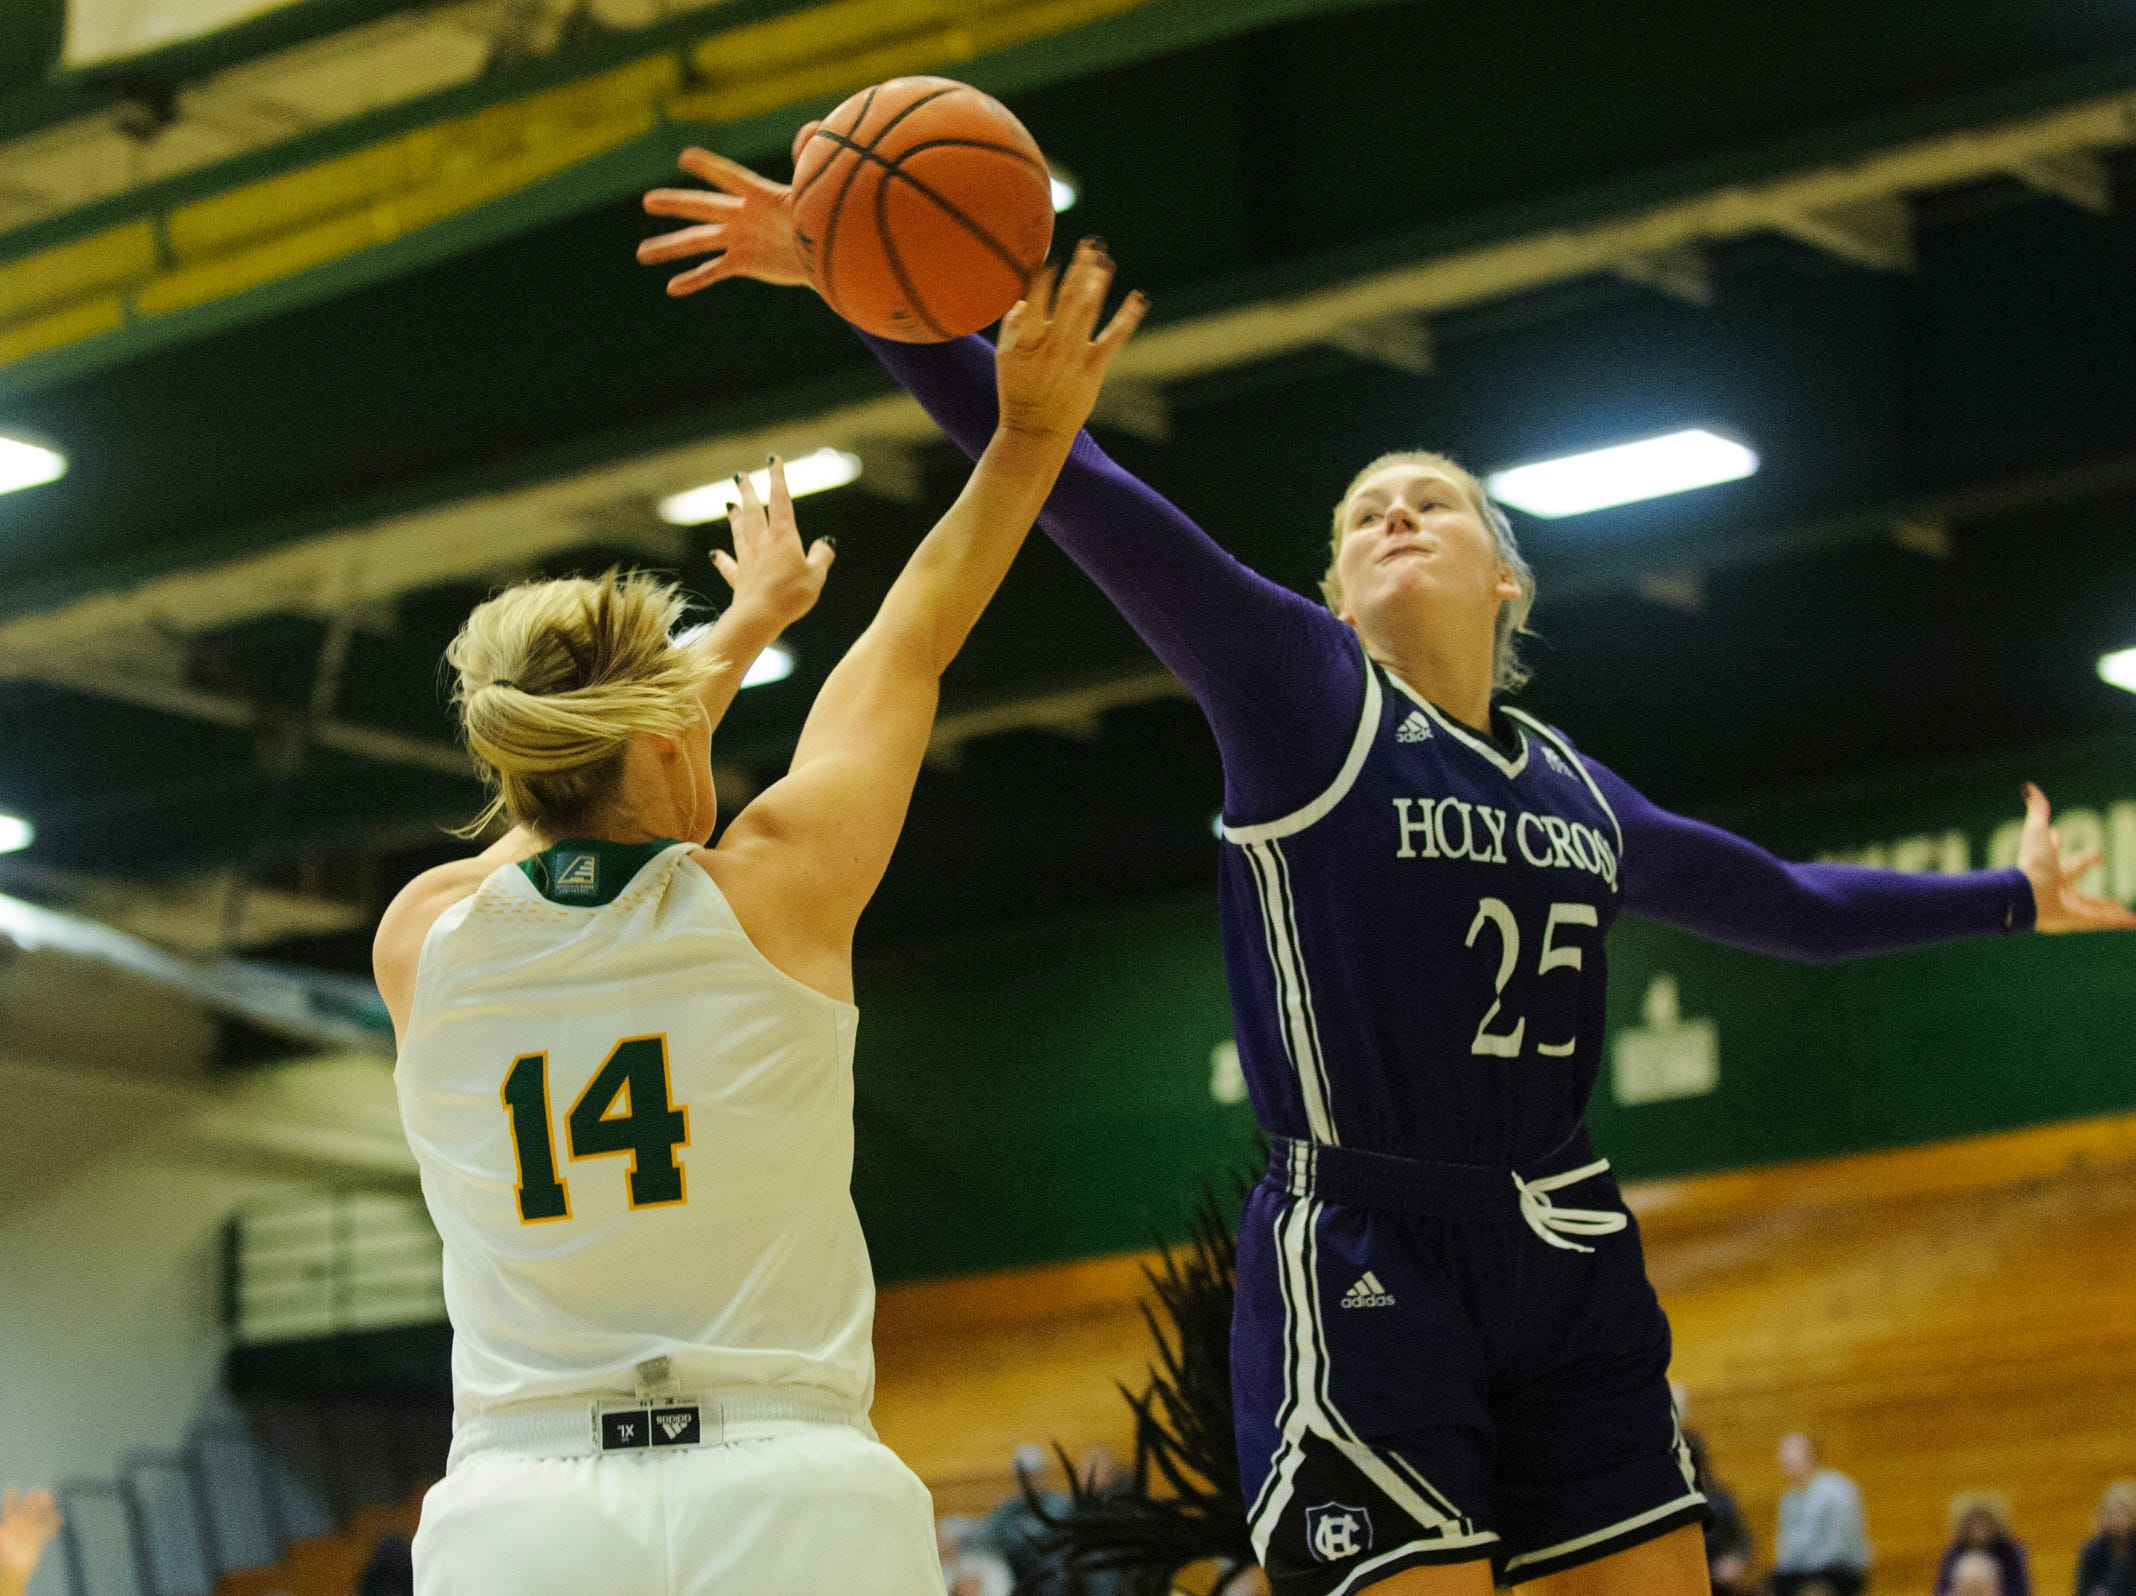 Holy Cross' Lauren Manis (25) blocks the shot by Vermont's Lauren Handy (14) during the women's basketball game between the Holy Cross Crusaders and the Vermont Catamounts at Patrick Gym on Wednesday night November 28, 2018 in Burlington.